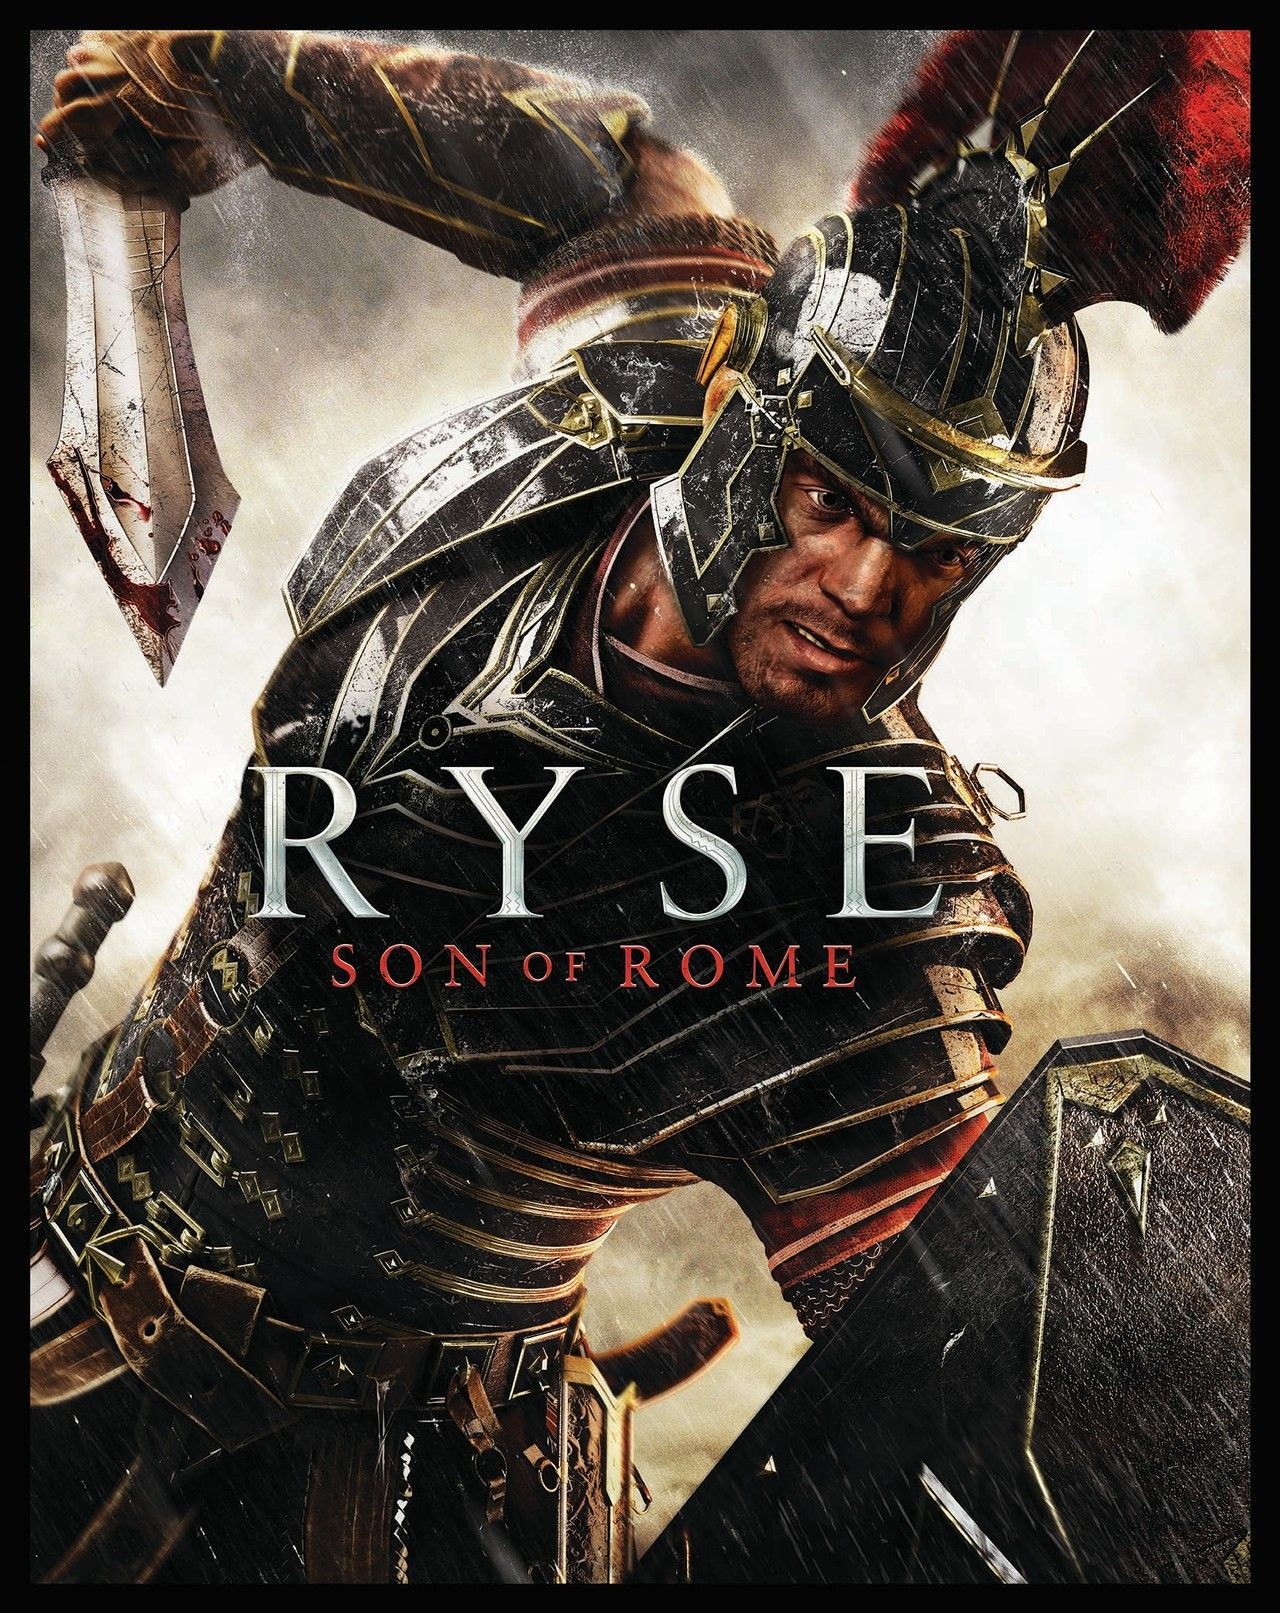 Ryse Son of Rome (With images) Xbox one games, Ryse son